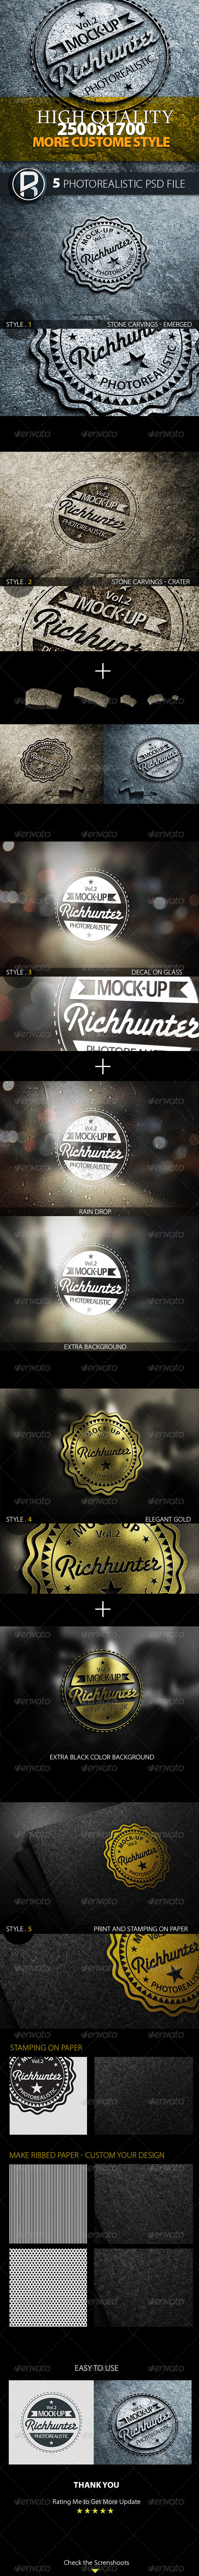 GraphicRiver Mock-Up Logo 3D Realistic Presentation Vol.2 5633350